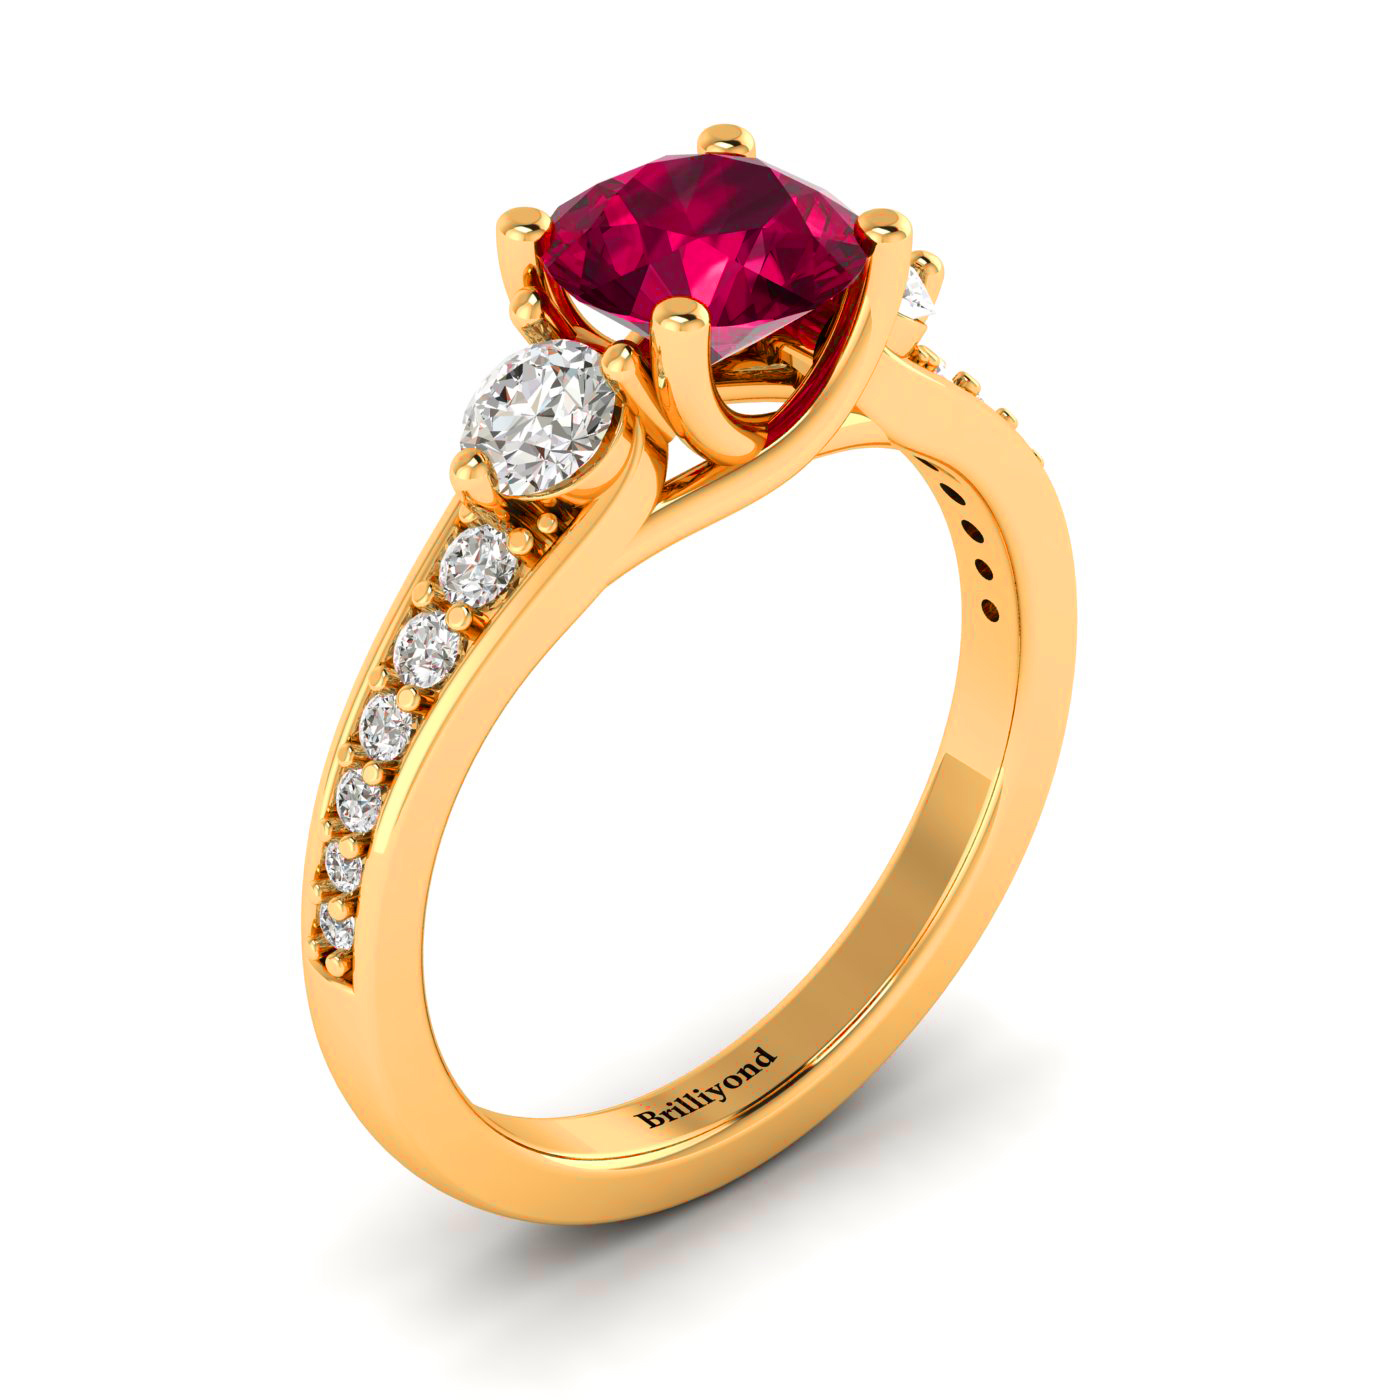 6mm Round Ruby on 18k Yellow Gold